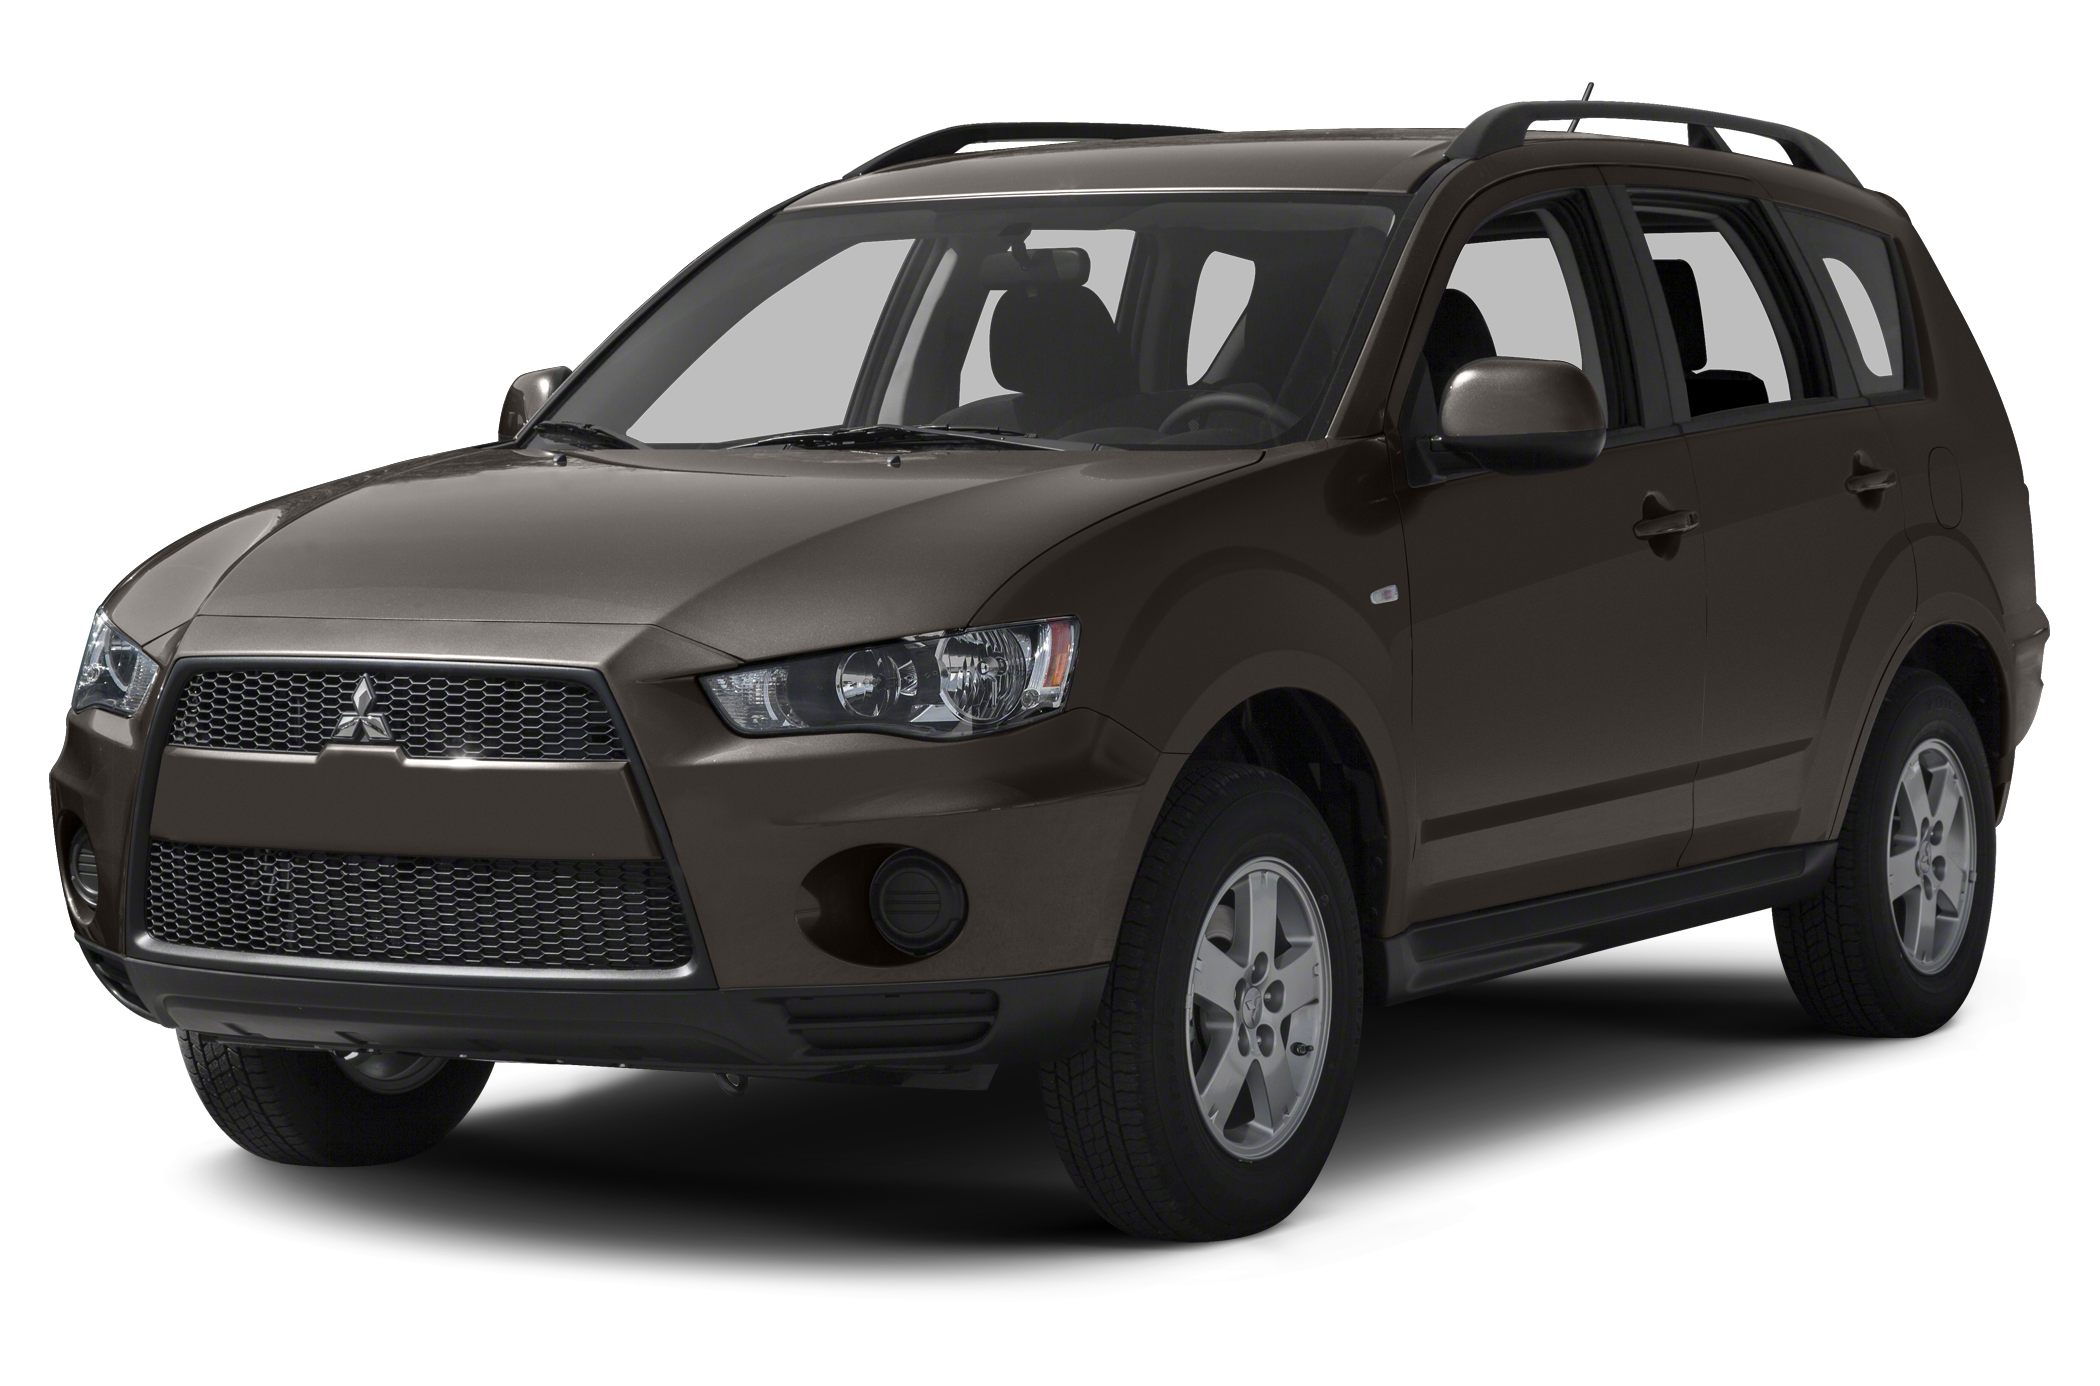 2013 Mitsubishi Outlander SE Vehicle Options 4WDAWD Electronic Brake Assistance Side Head Curtain